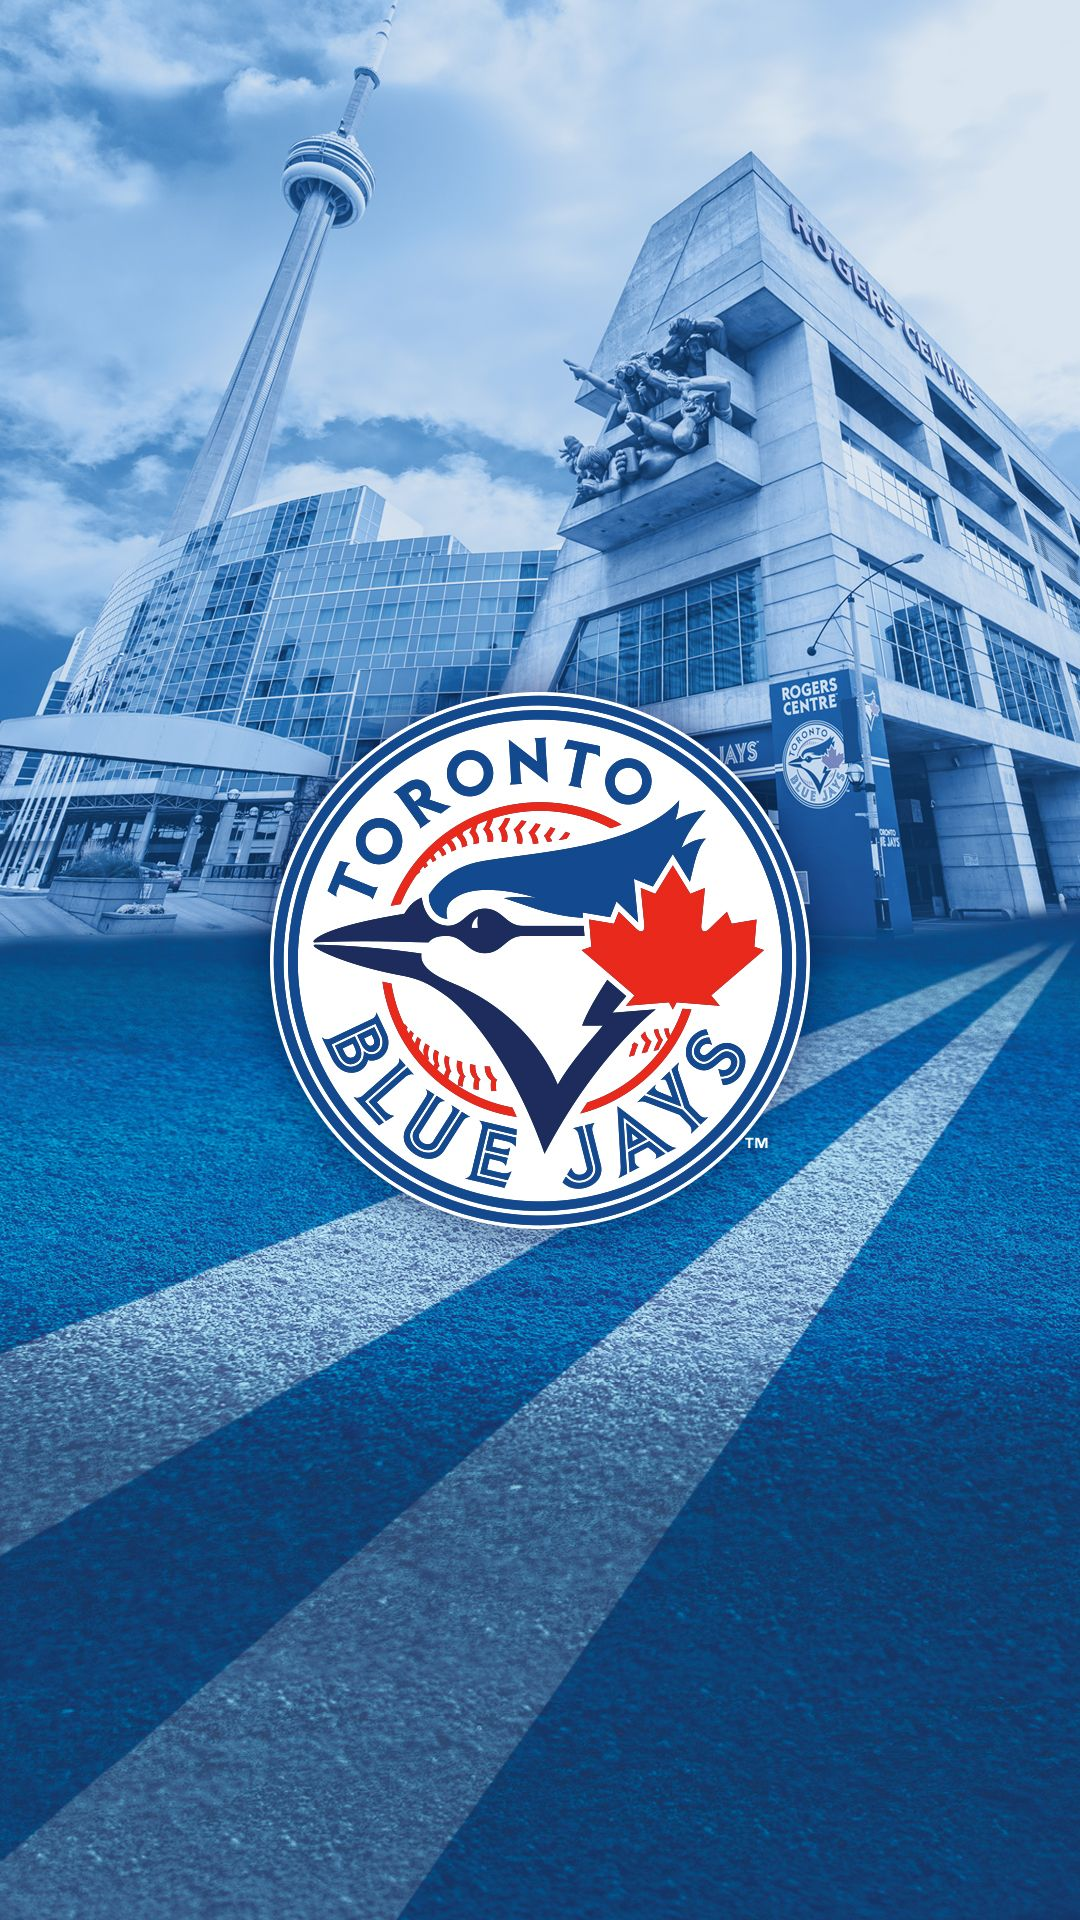 Toronto Blue Jays Wallpaper IPhone wallpapers 2020 Check